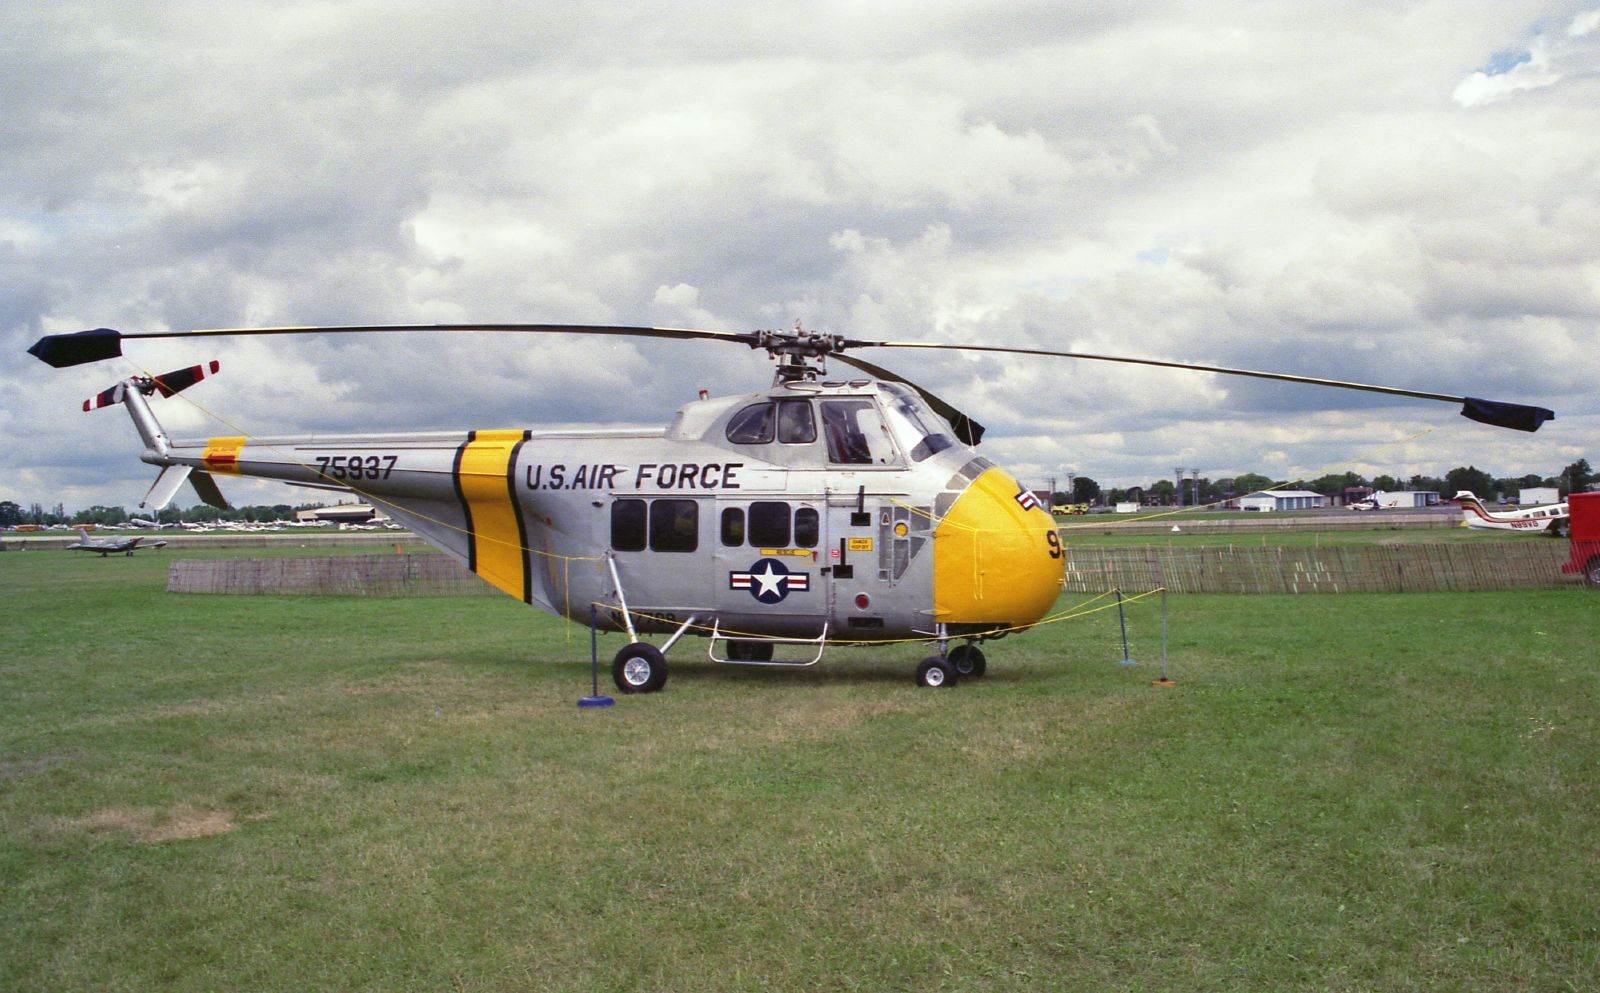 Helicopter Flight Training : Transition to the Sikorsky H-19 ...